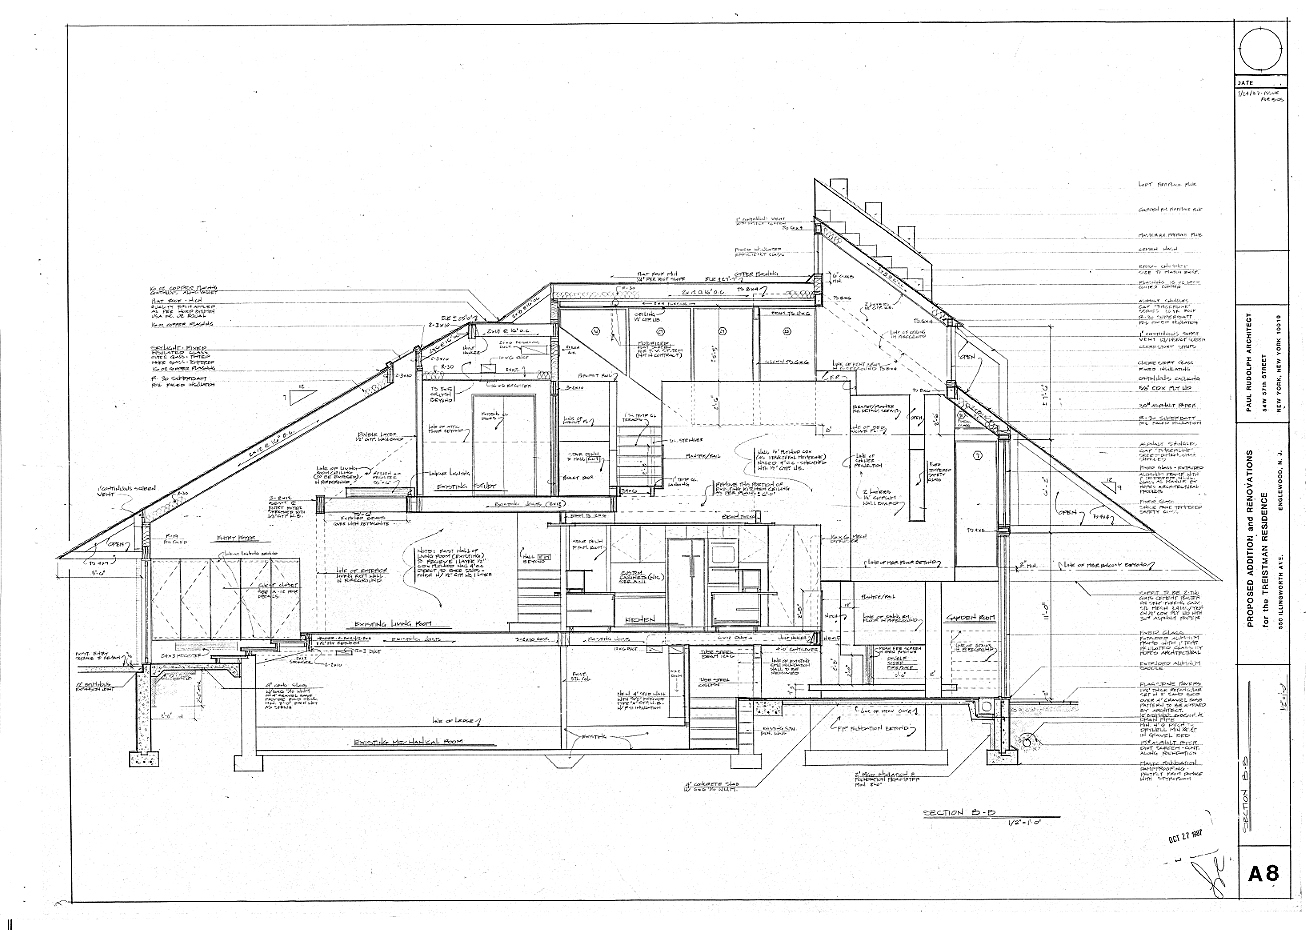 Residence for Mr. and Mrs. Treistman, Englewood, New Jersey. Section A-8, Sheet A8.